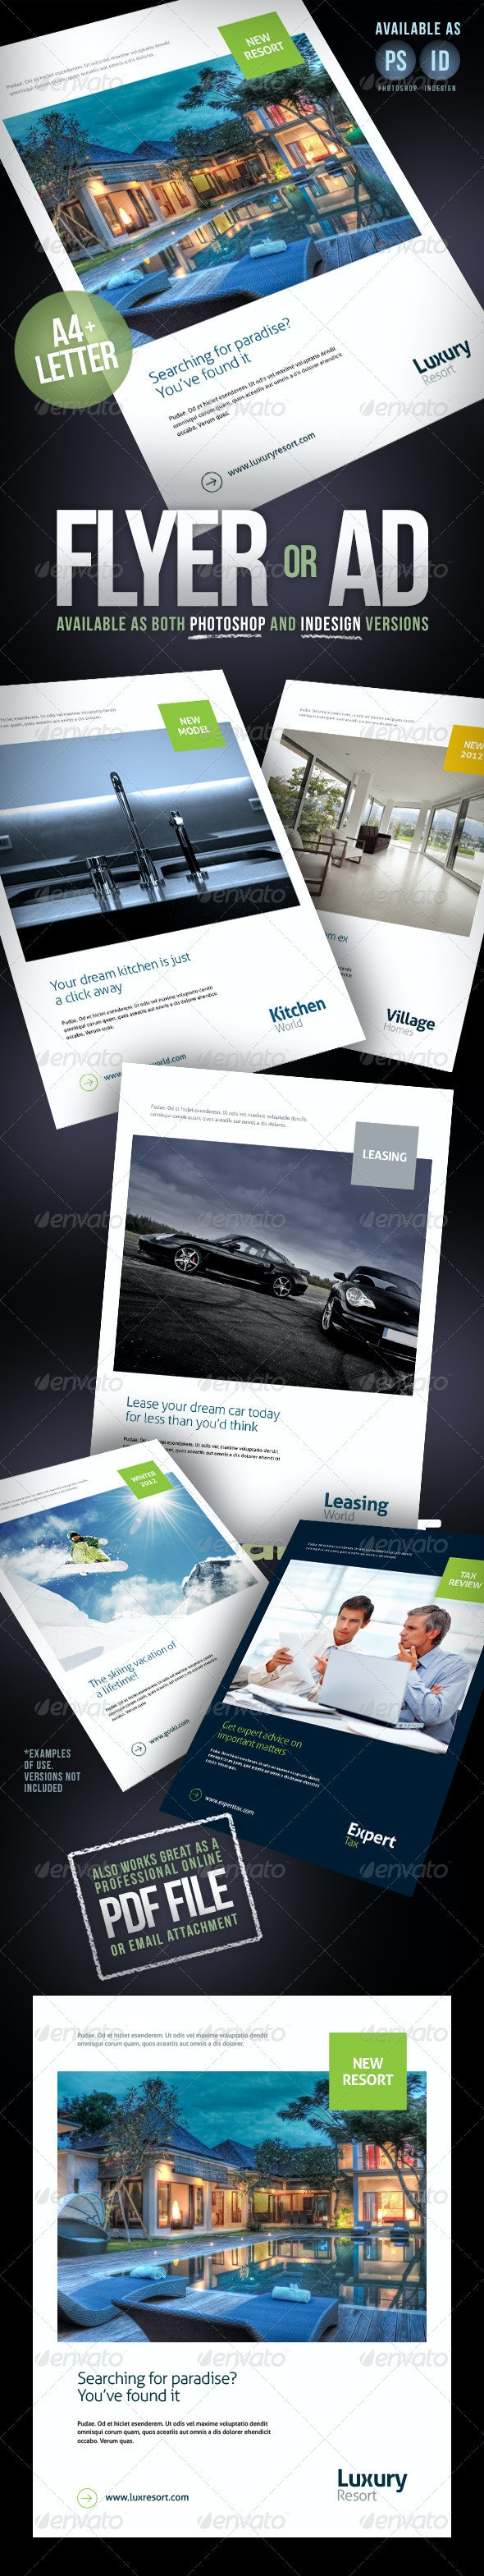 Flyer, Magazine Ad or Product Sheet - Commerce Flyers